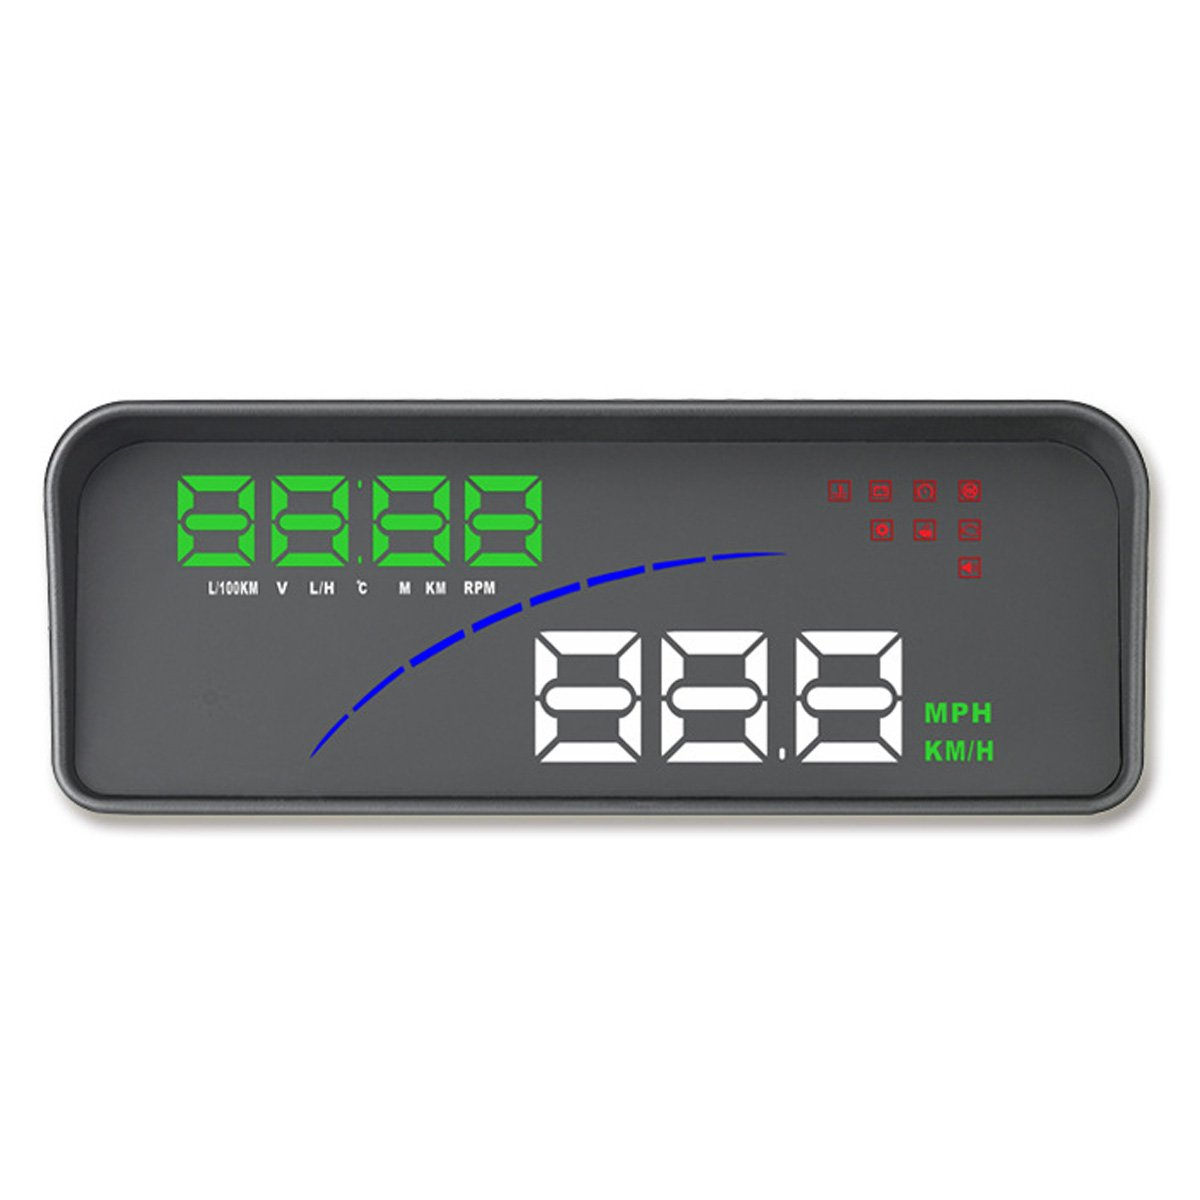 OLSUS Universal Vehicle GPS HUD Digital Head Up Display with Speed Projector Function - Black